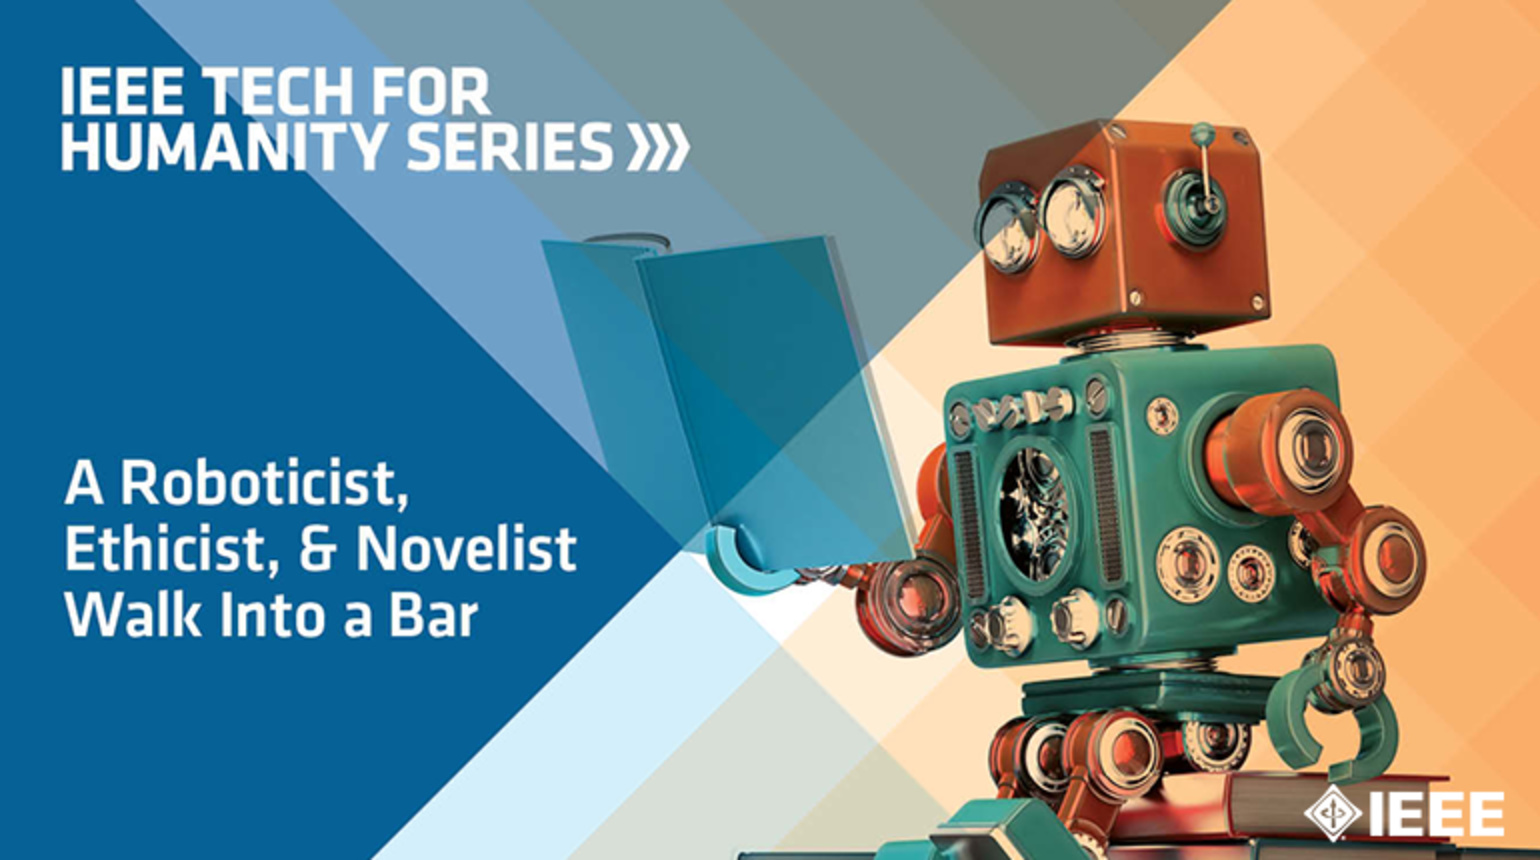 A Roboticist, Ethicist and Novelist Walk Into a Bar: IEEE TechEthics Panel at SXSW